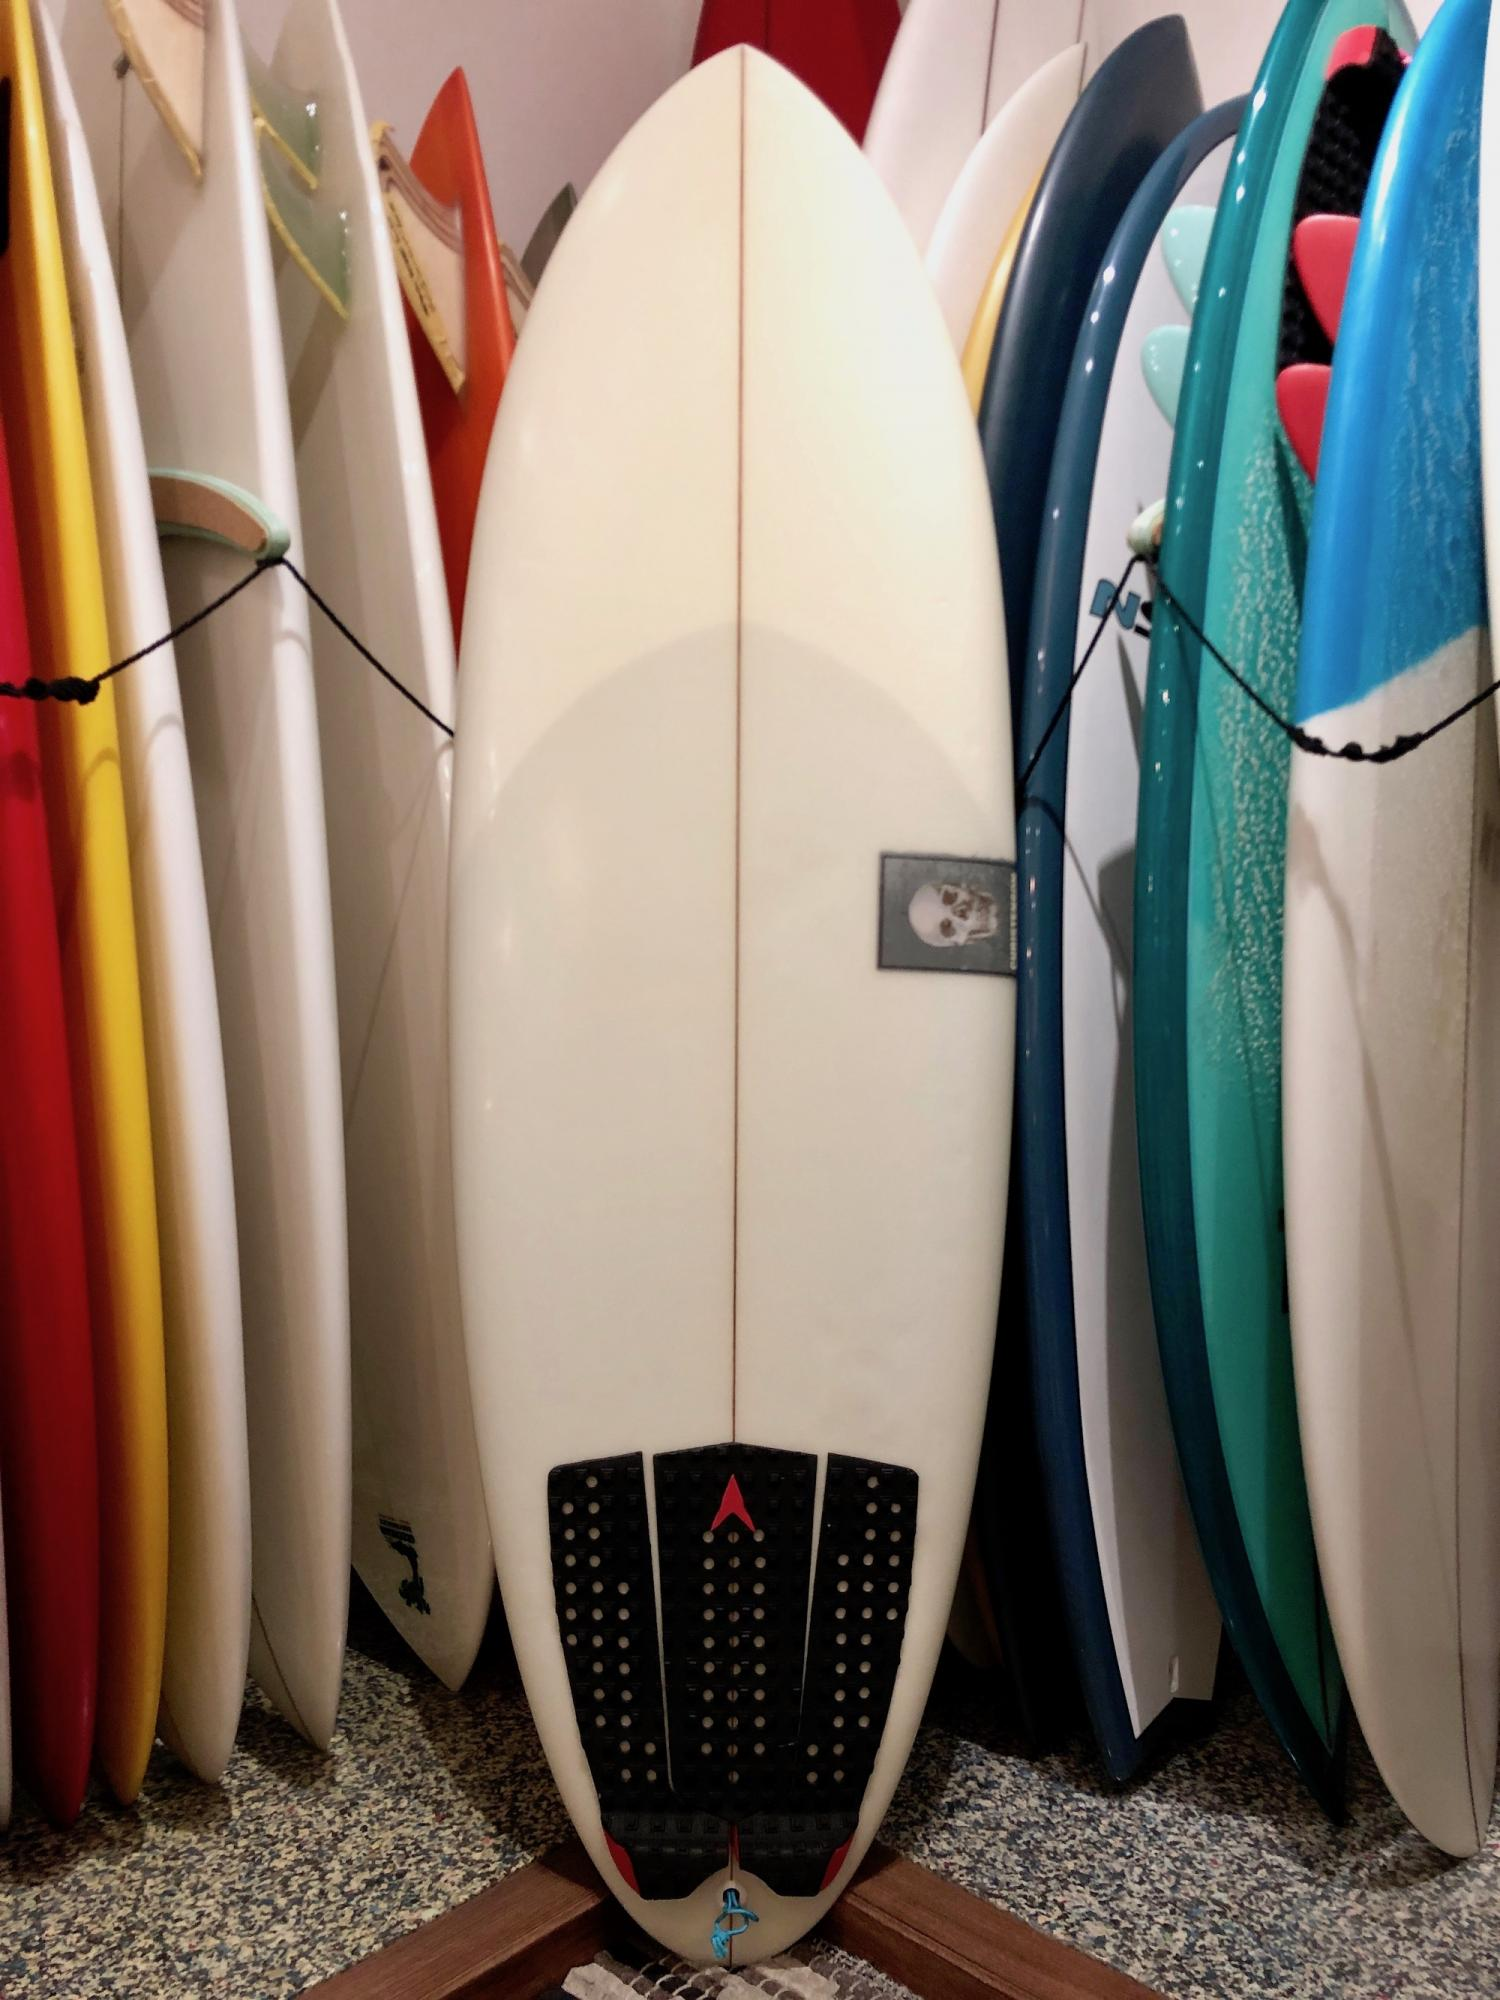 USED BOARDS (5.6 SCRAMBLER CHRISTENSON SURFBOARDS)